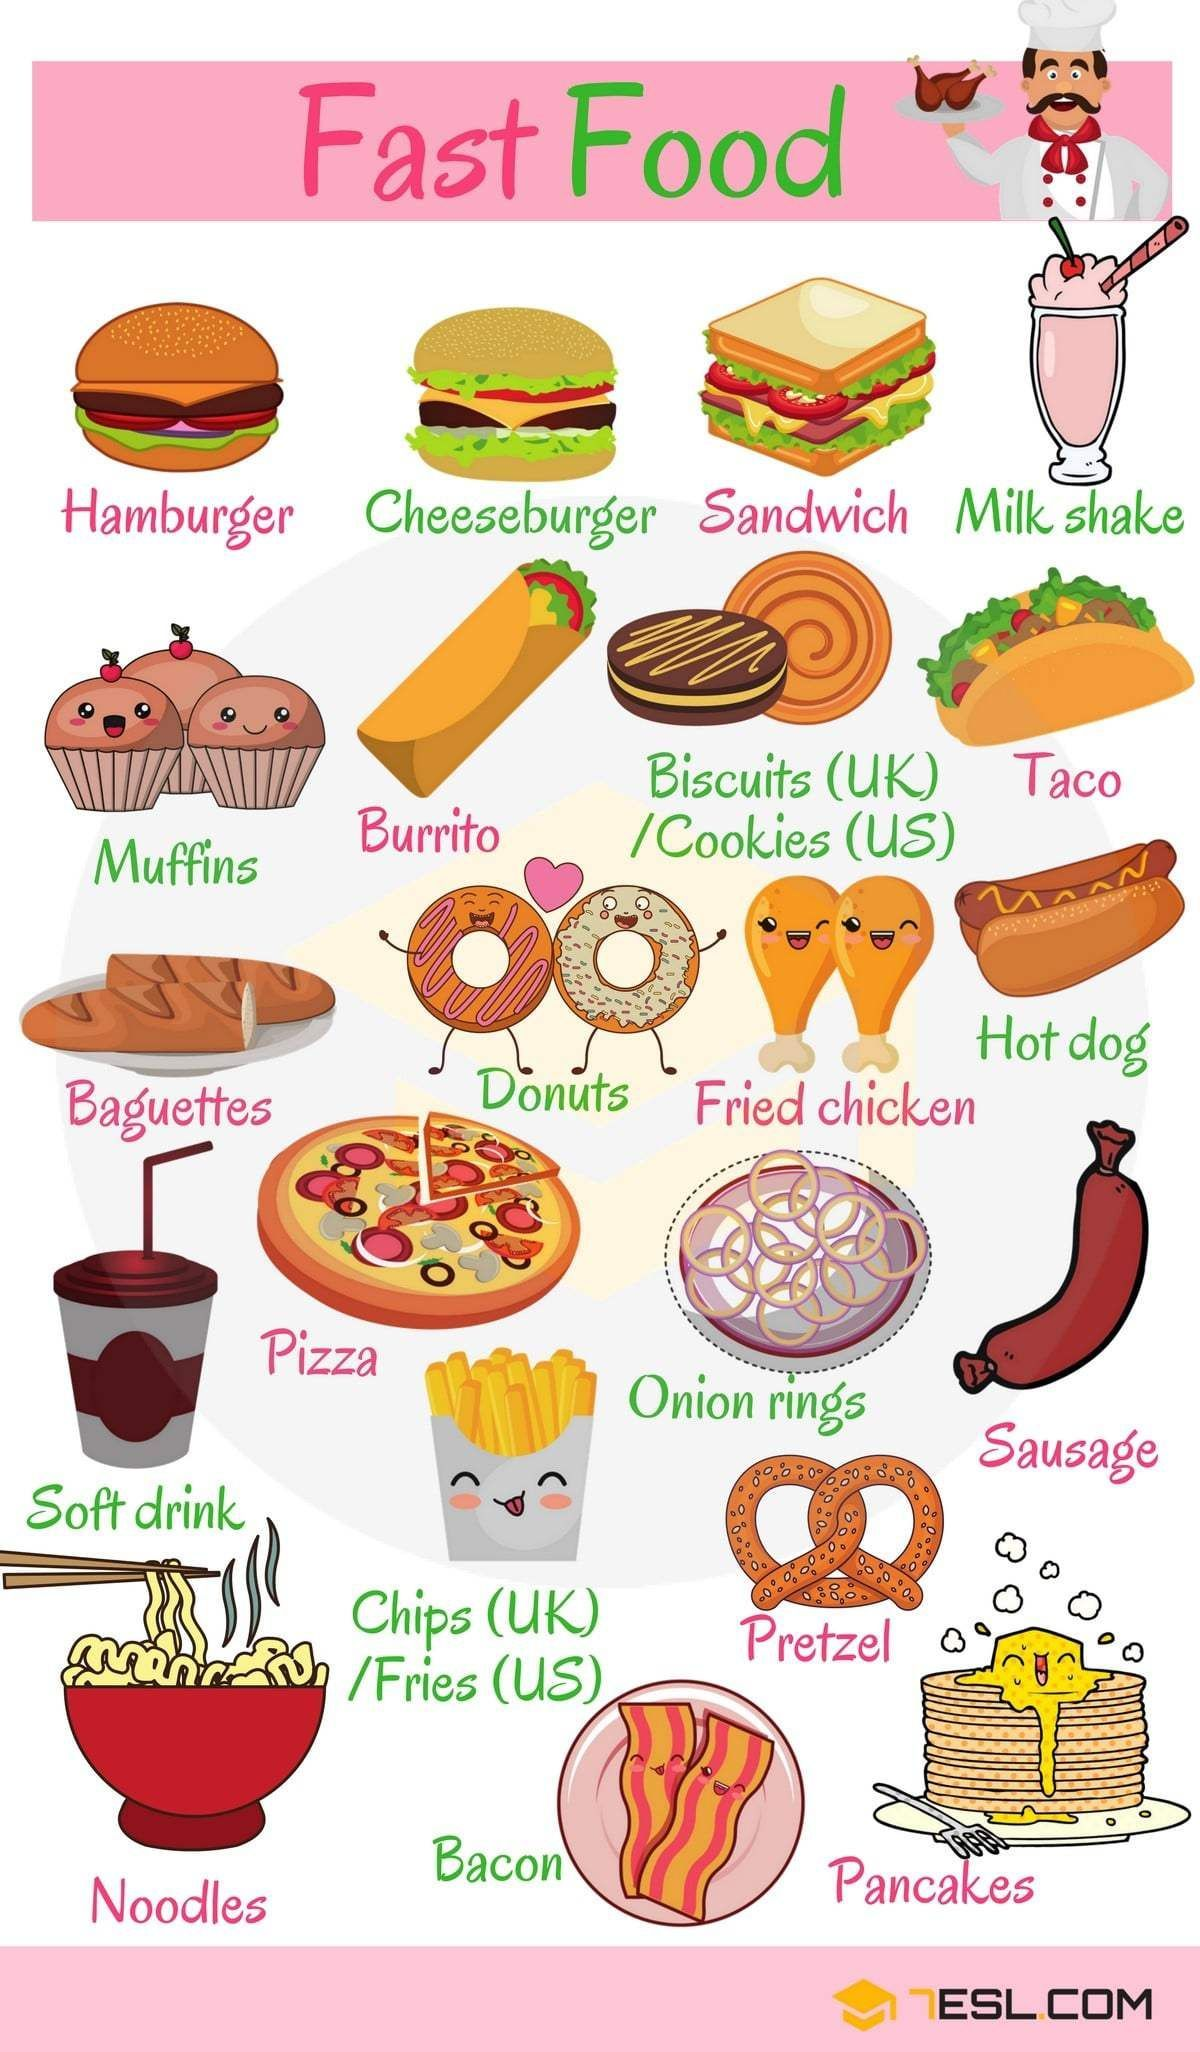 Fast Food Is A Mass Produced Food That Is Prepared And